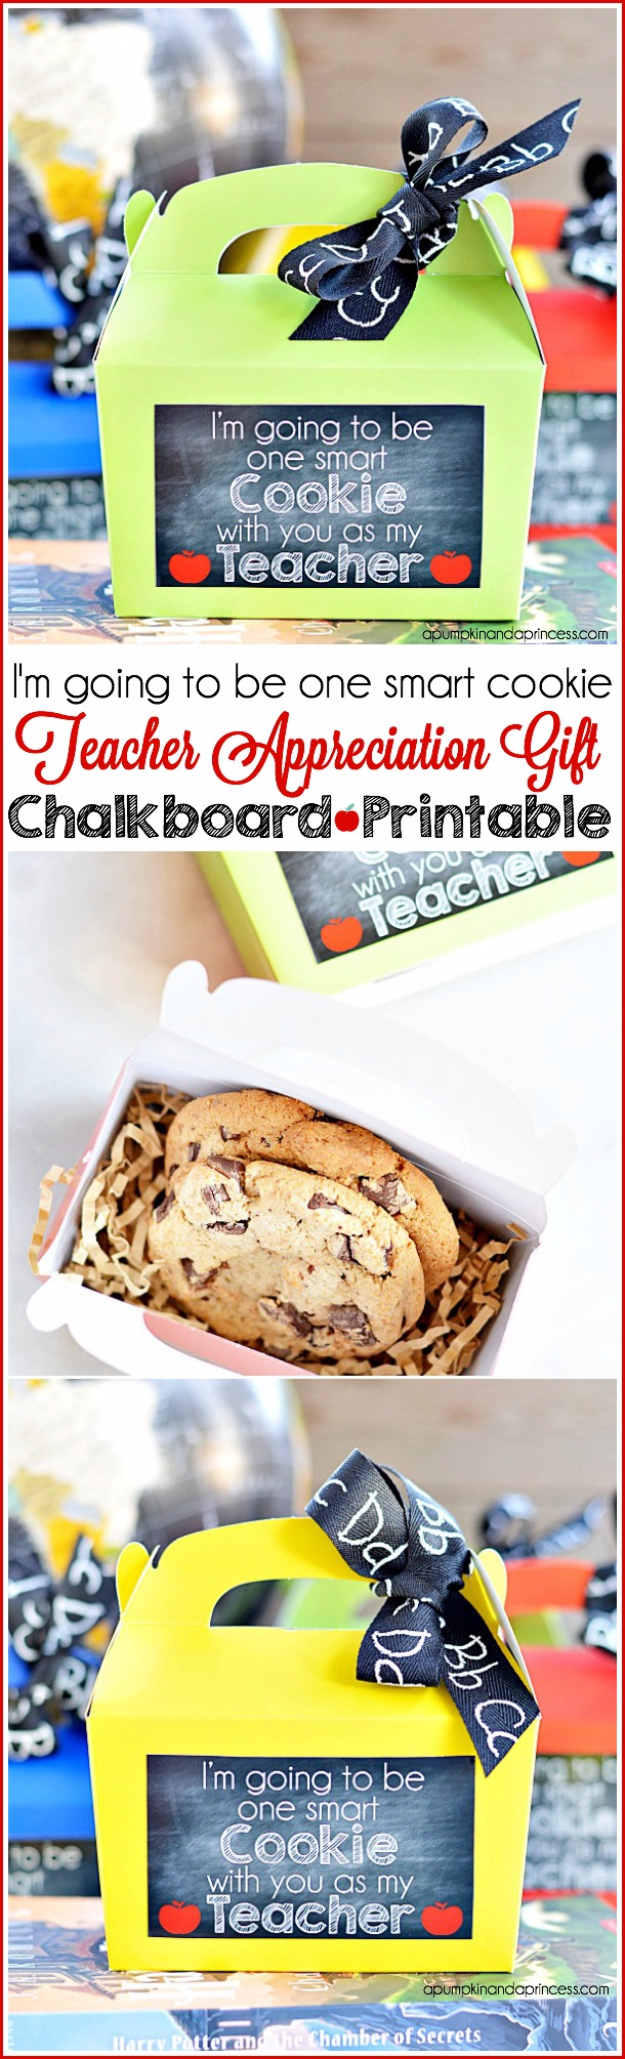 DIY Teacher Gifts - Cookie Teacher Gift - Cheap and Easy Presents and DIY Gift Ideas for Teachers at Christmas, End of Year, First Day and Birthday - Teacher Appreciation Gifts and Crafts - Cute Mason Jar Ideas and Thoughtful, Unique Gifts from Kids #diygifts #teachersgifts #diyideas #cheapgifts